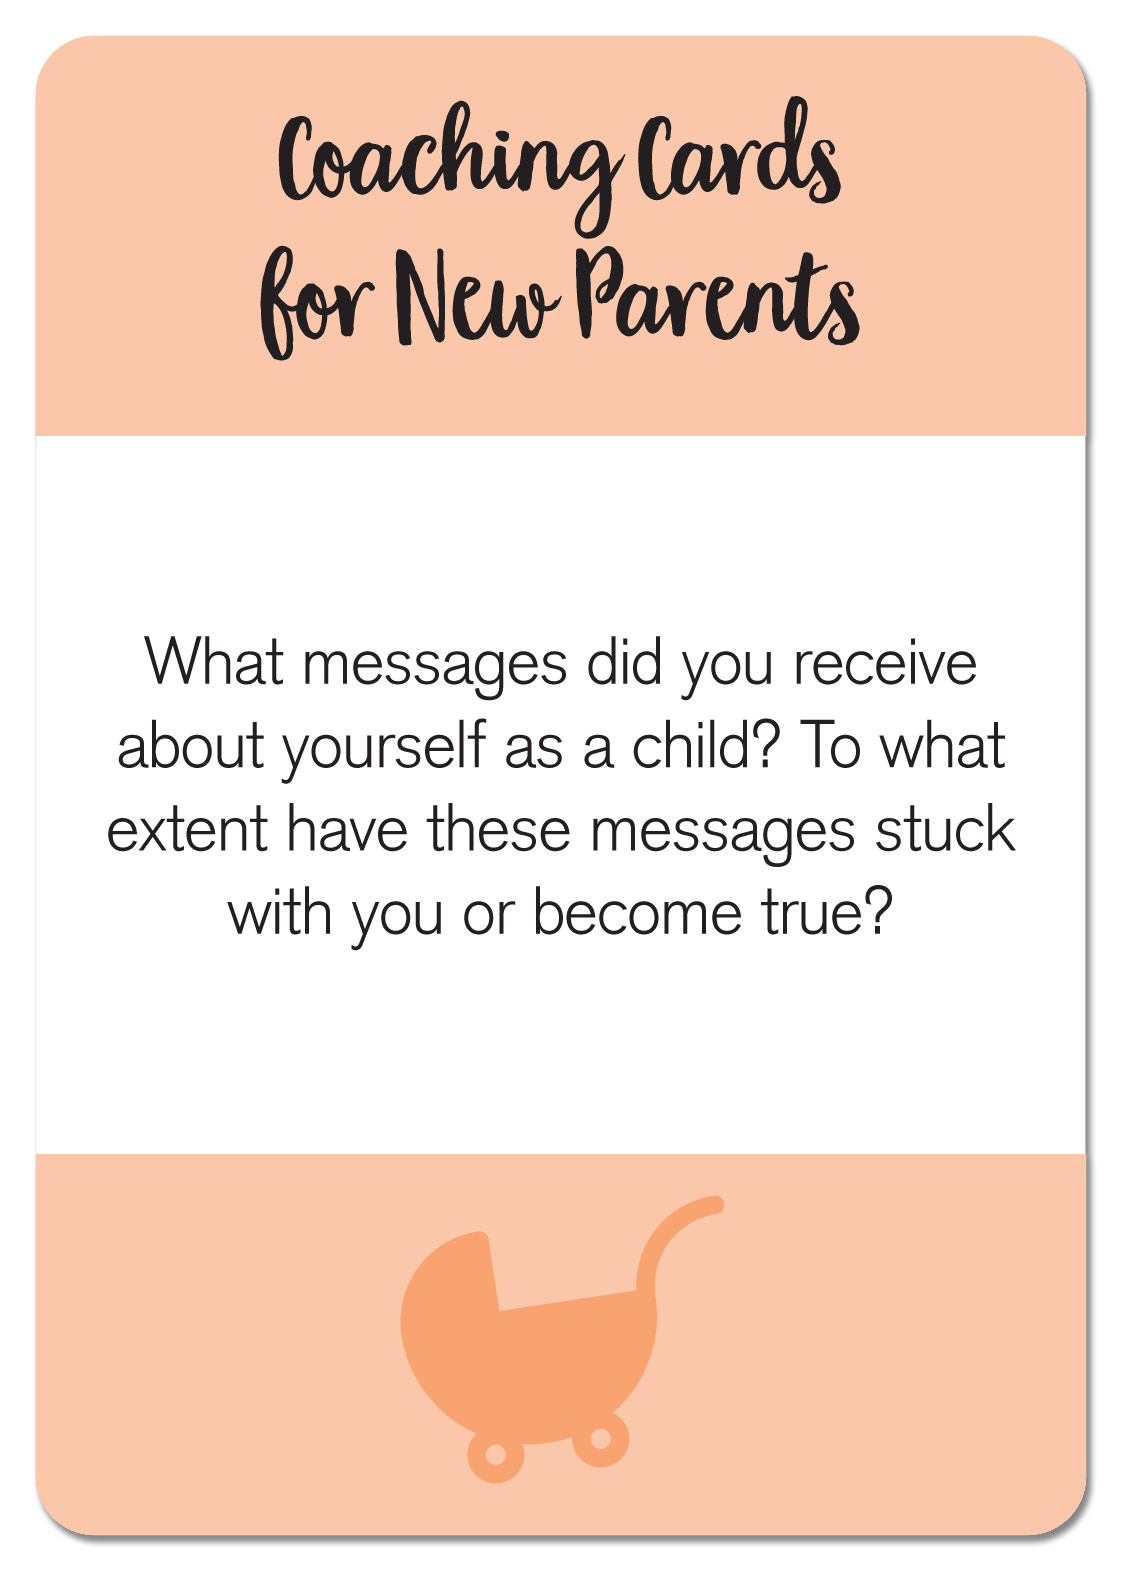 coaching-cards-new-parents_new-colour_36